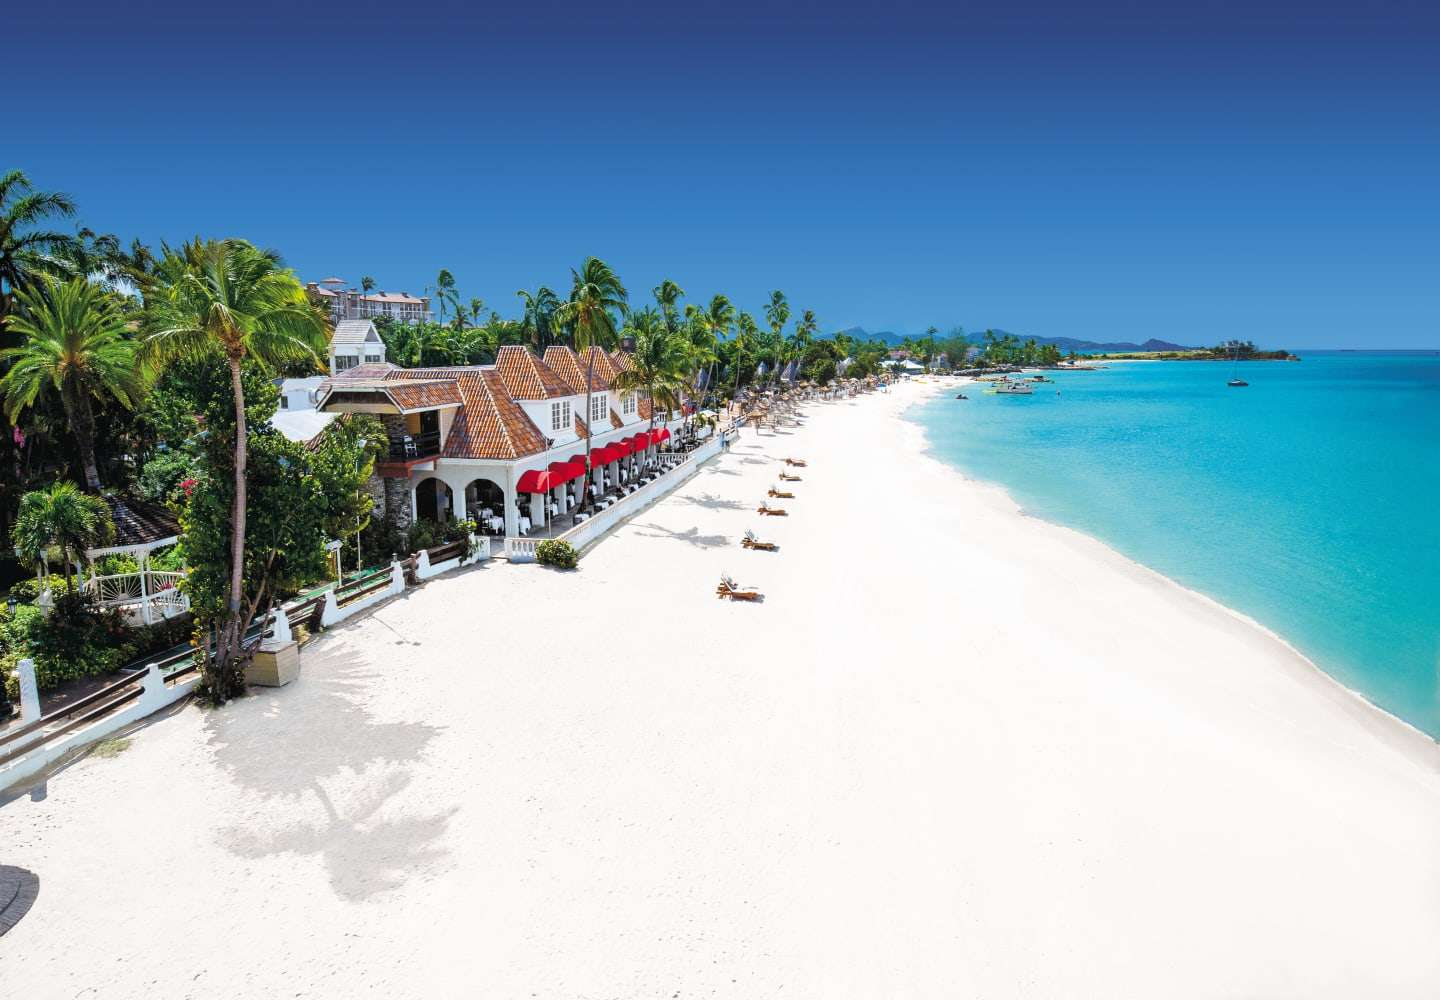 Image of Sandals Grande Antigua Resort & Spa, Saint John's, Antigua